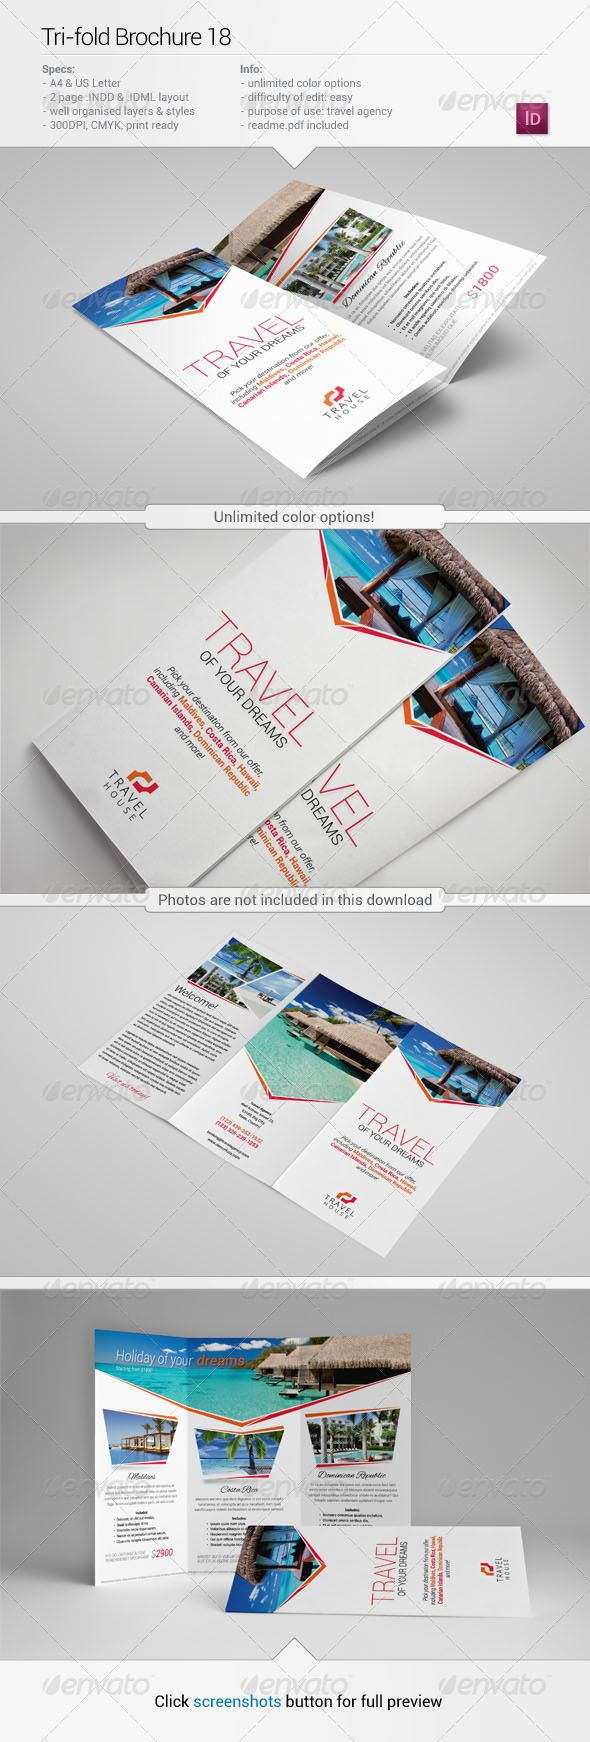 Tri-Fold Brochure 18 could use with jumps in the middle